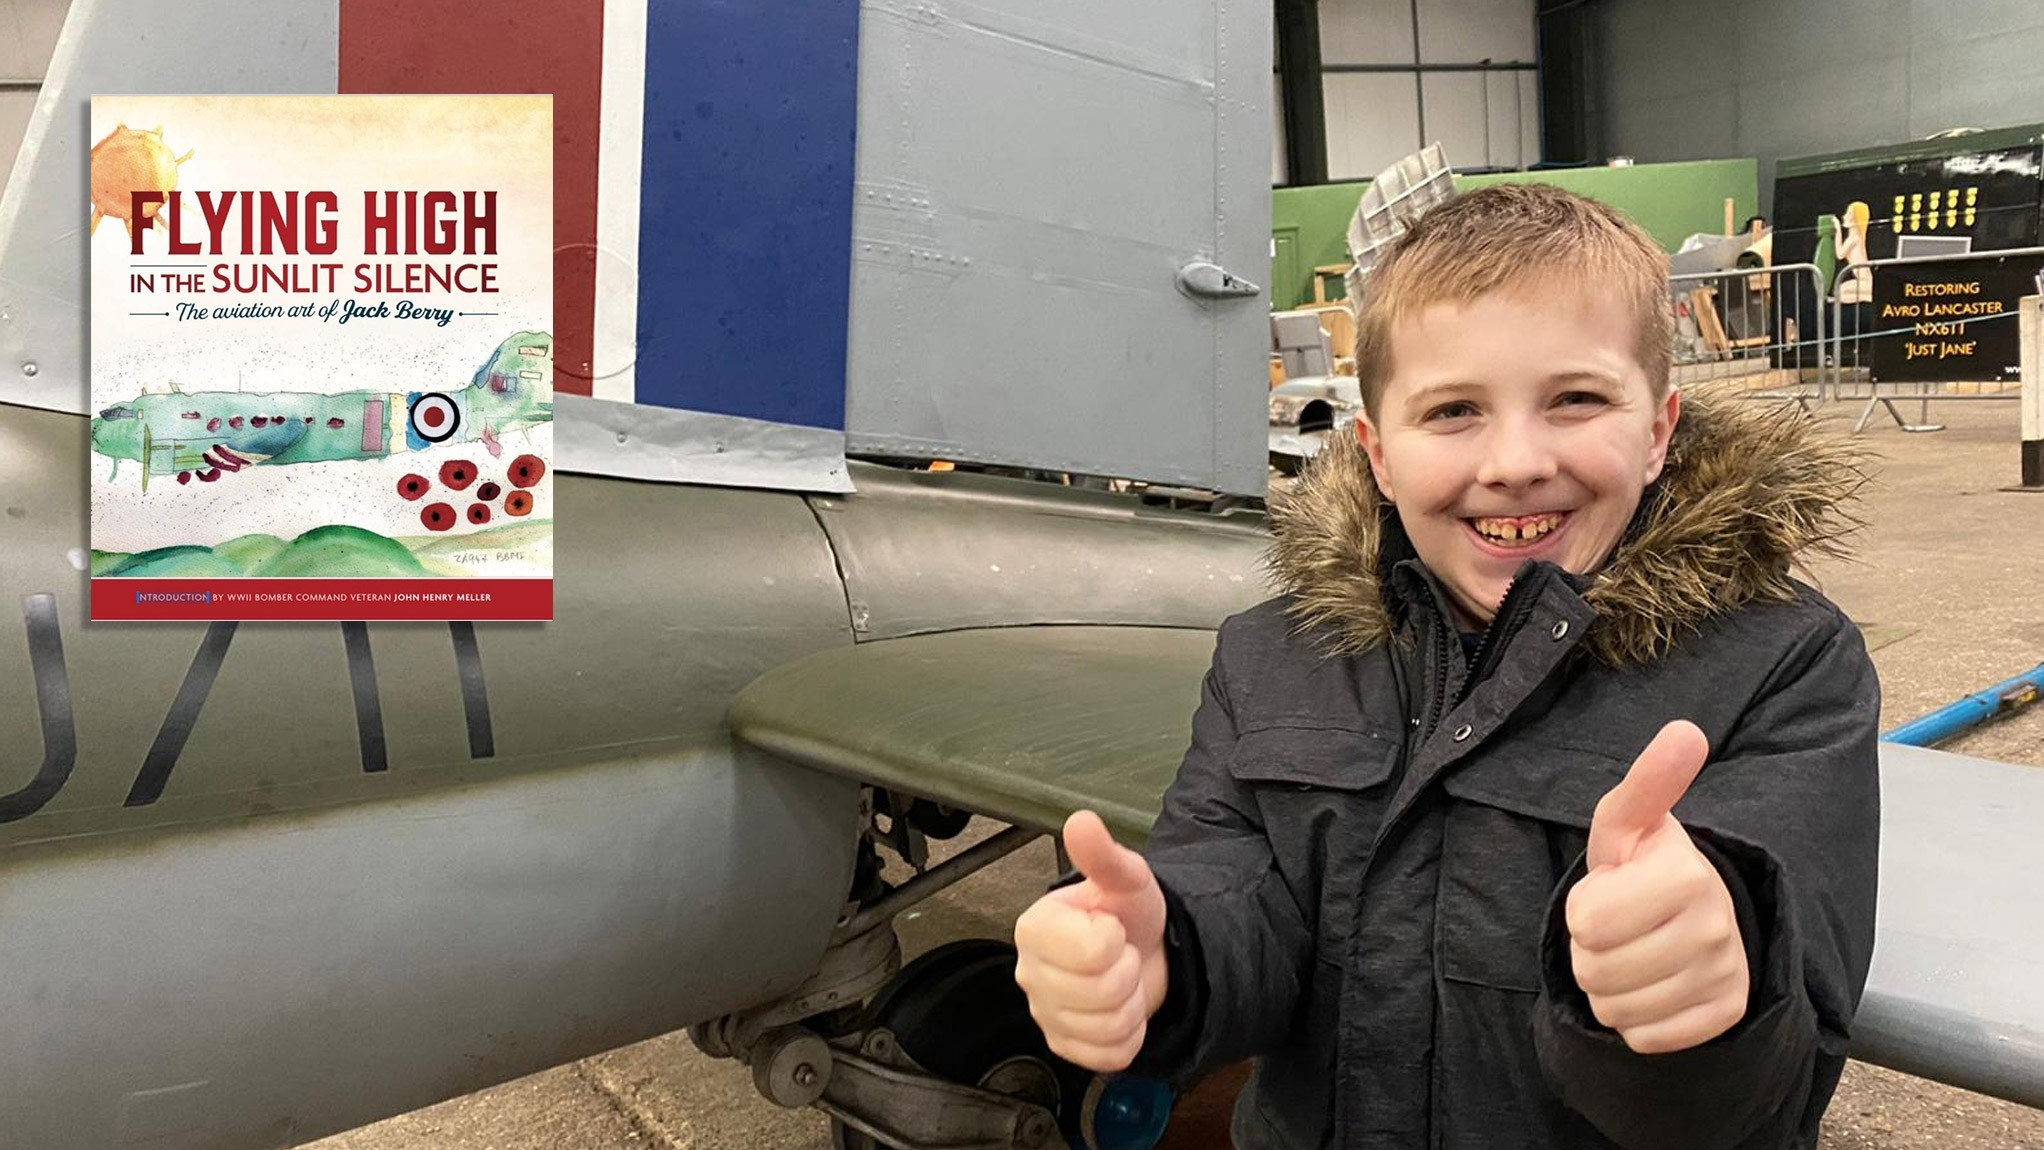 Thumbs up for fundraiser and aviation artist Jack's new book